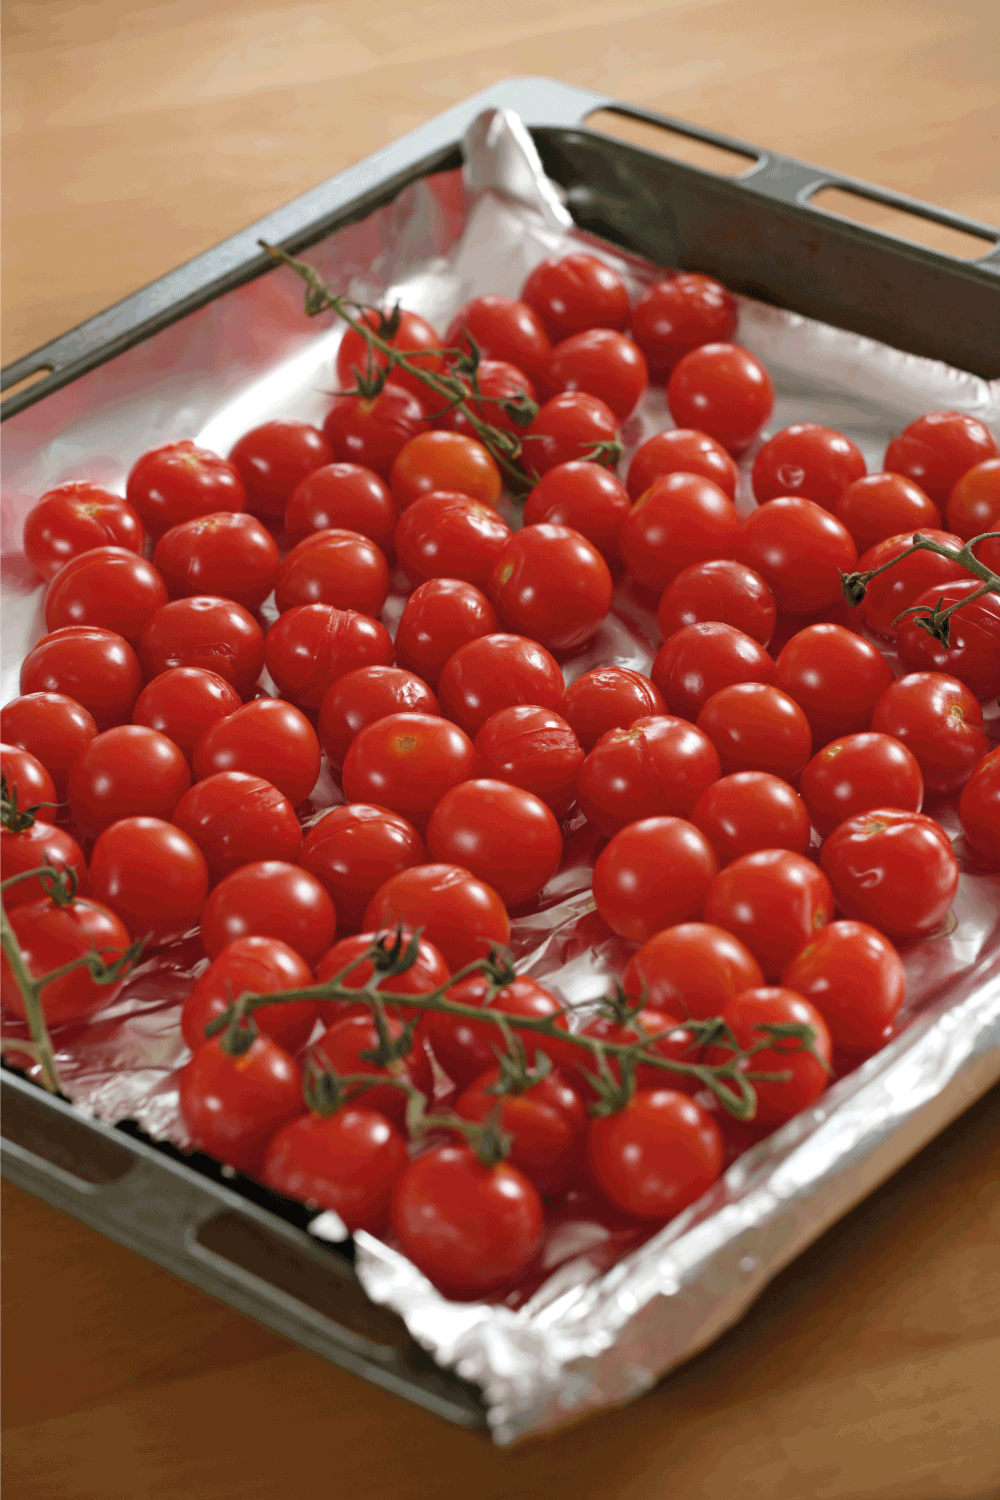 Roasted cherry tomatoes in a baking pan